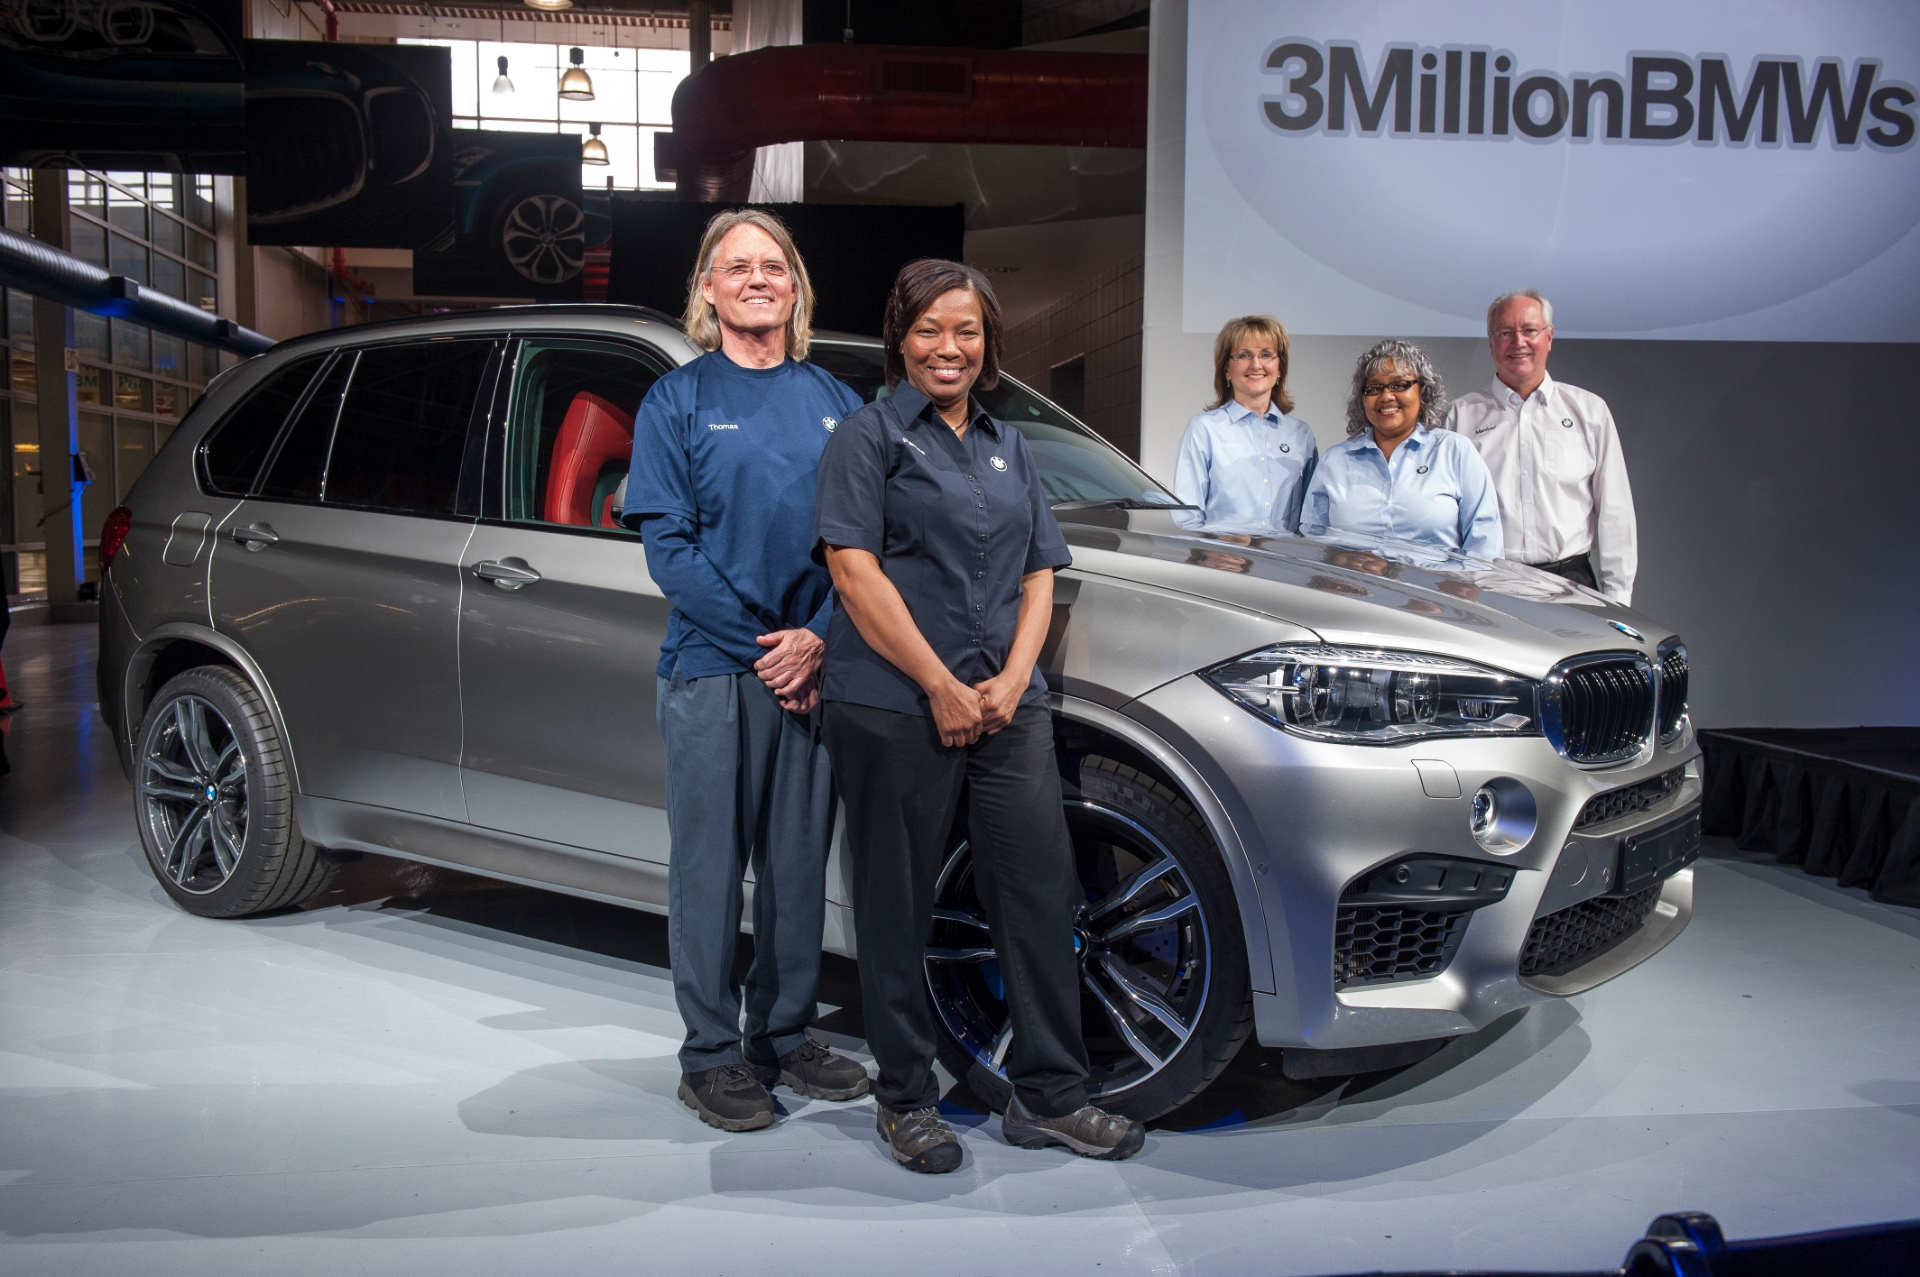 Bmw Celebrates 3 Million Cars Made In South Carolina